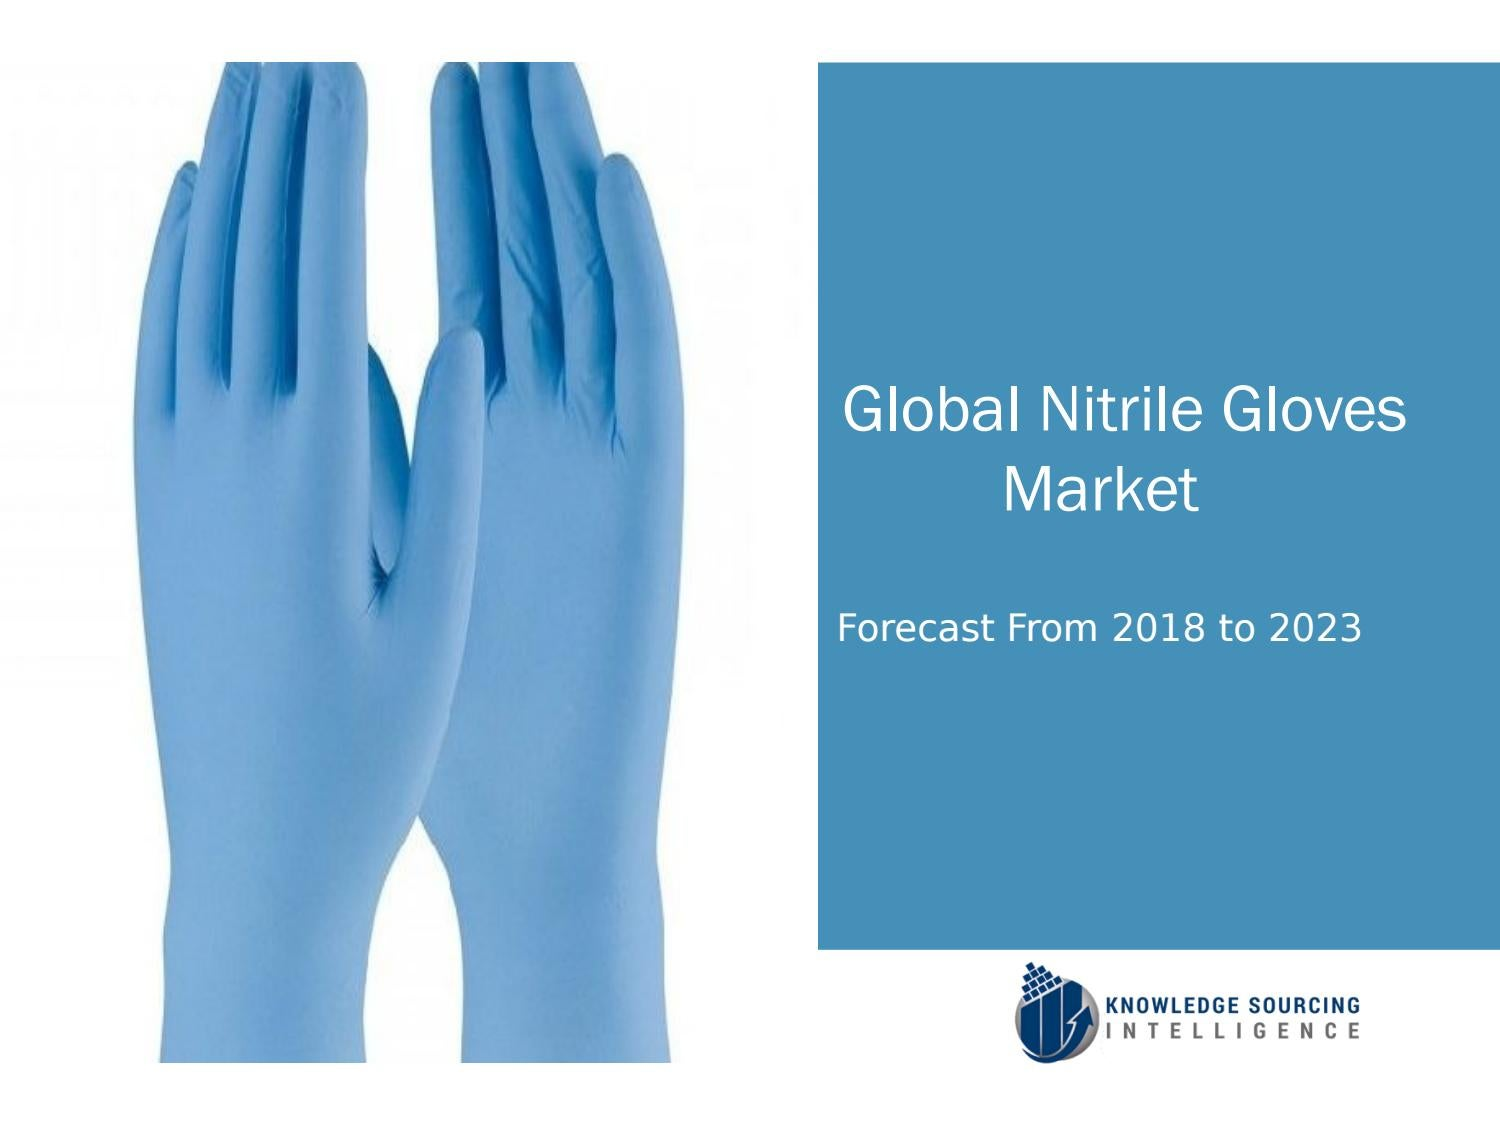 Global Nitrile Gloves Market Forecasts From 2019 To 2024 By